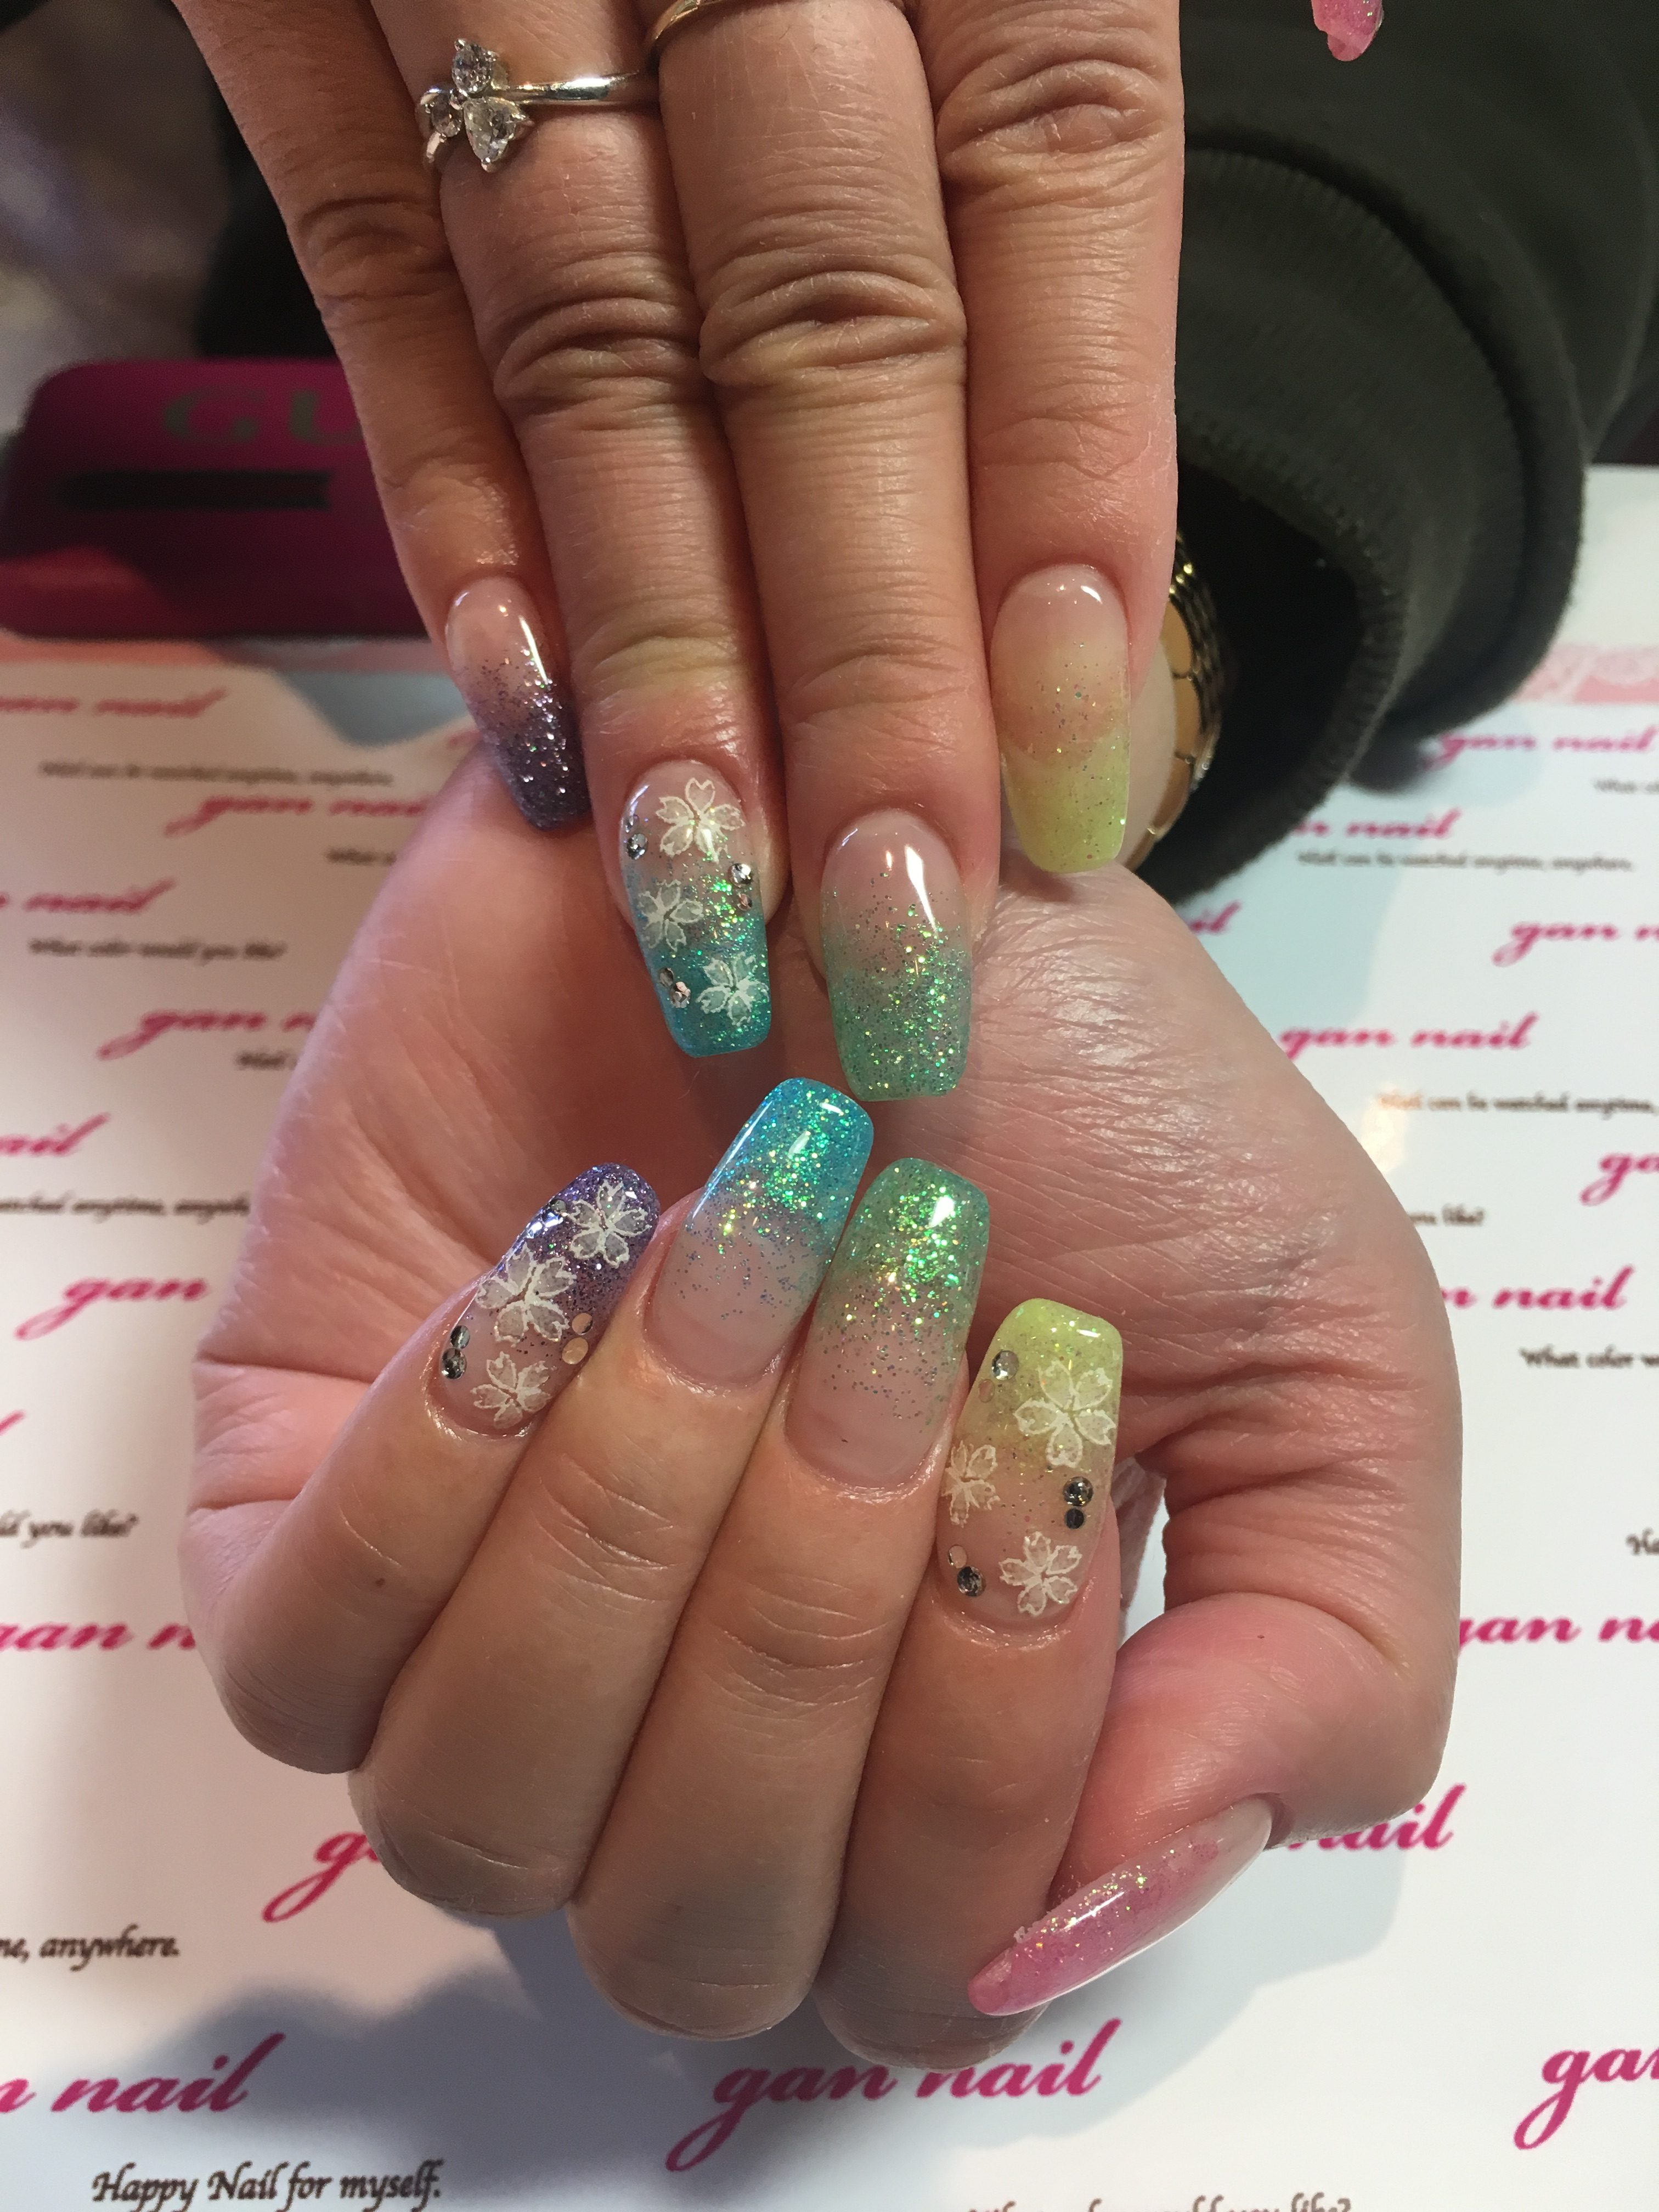 is interior design for me nail salon for me nail salon pinterest さくらネイル. こんにちは♪